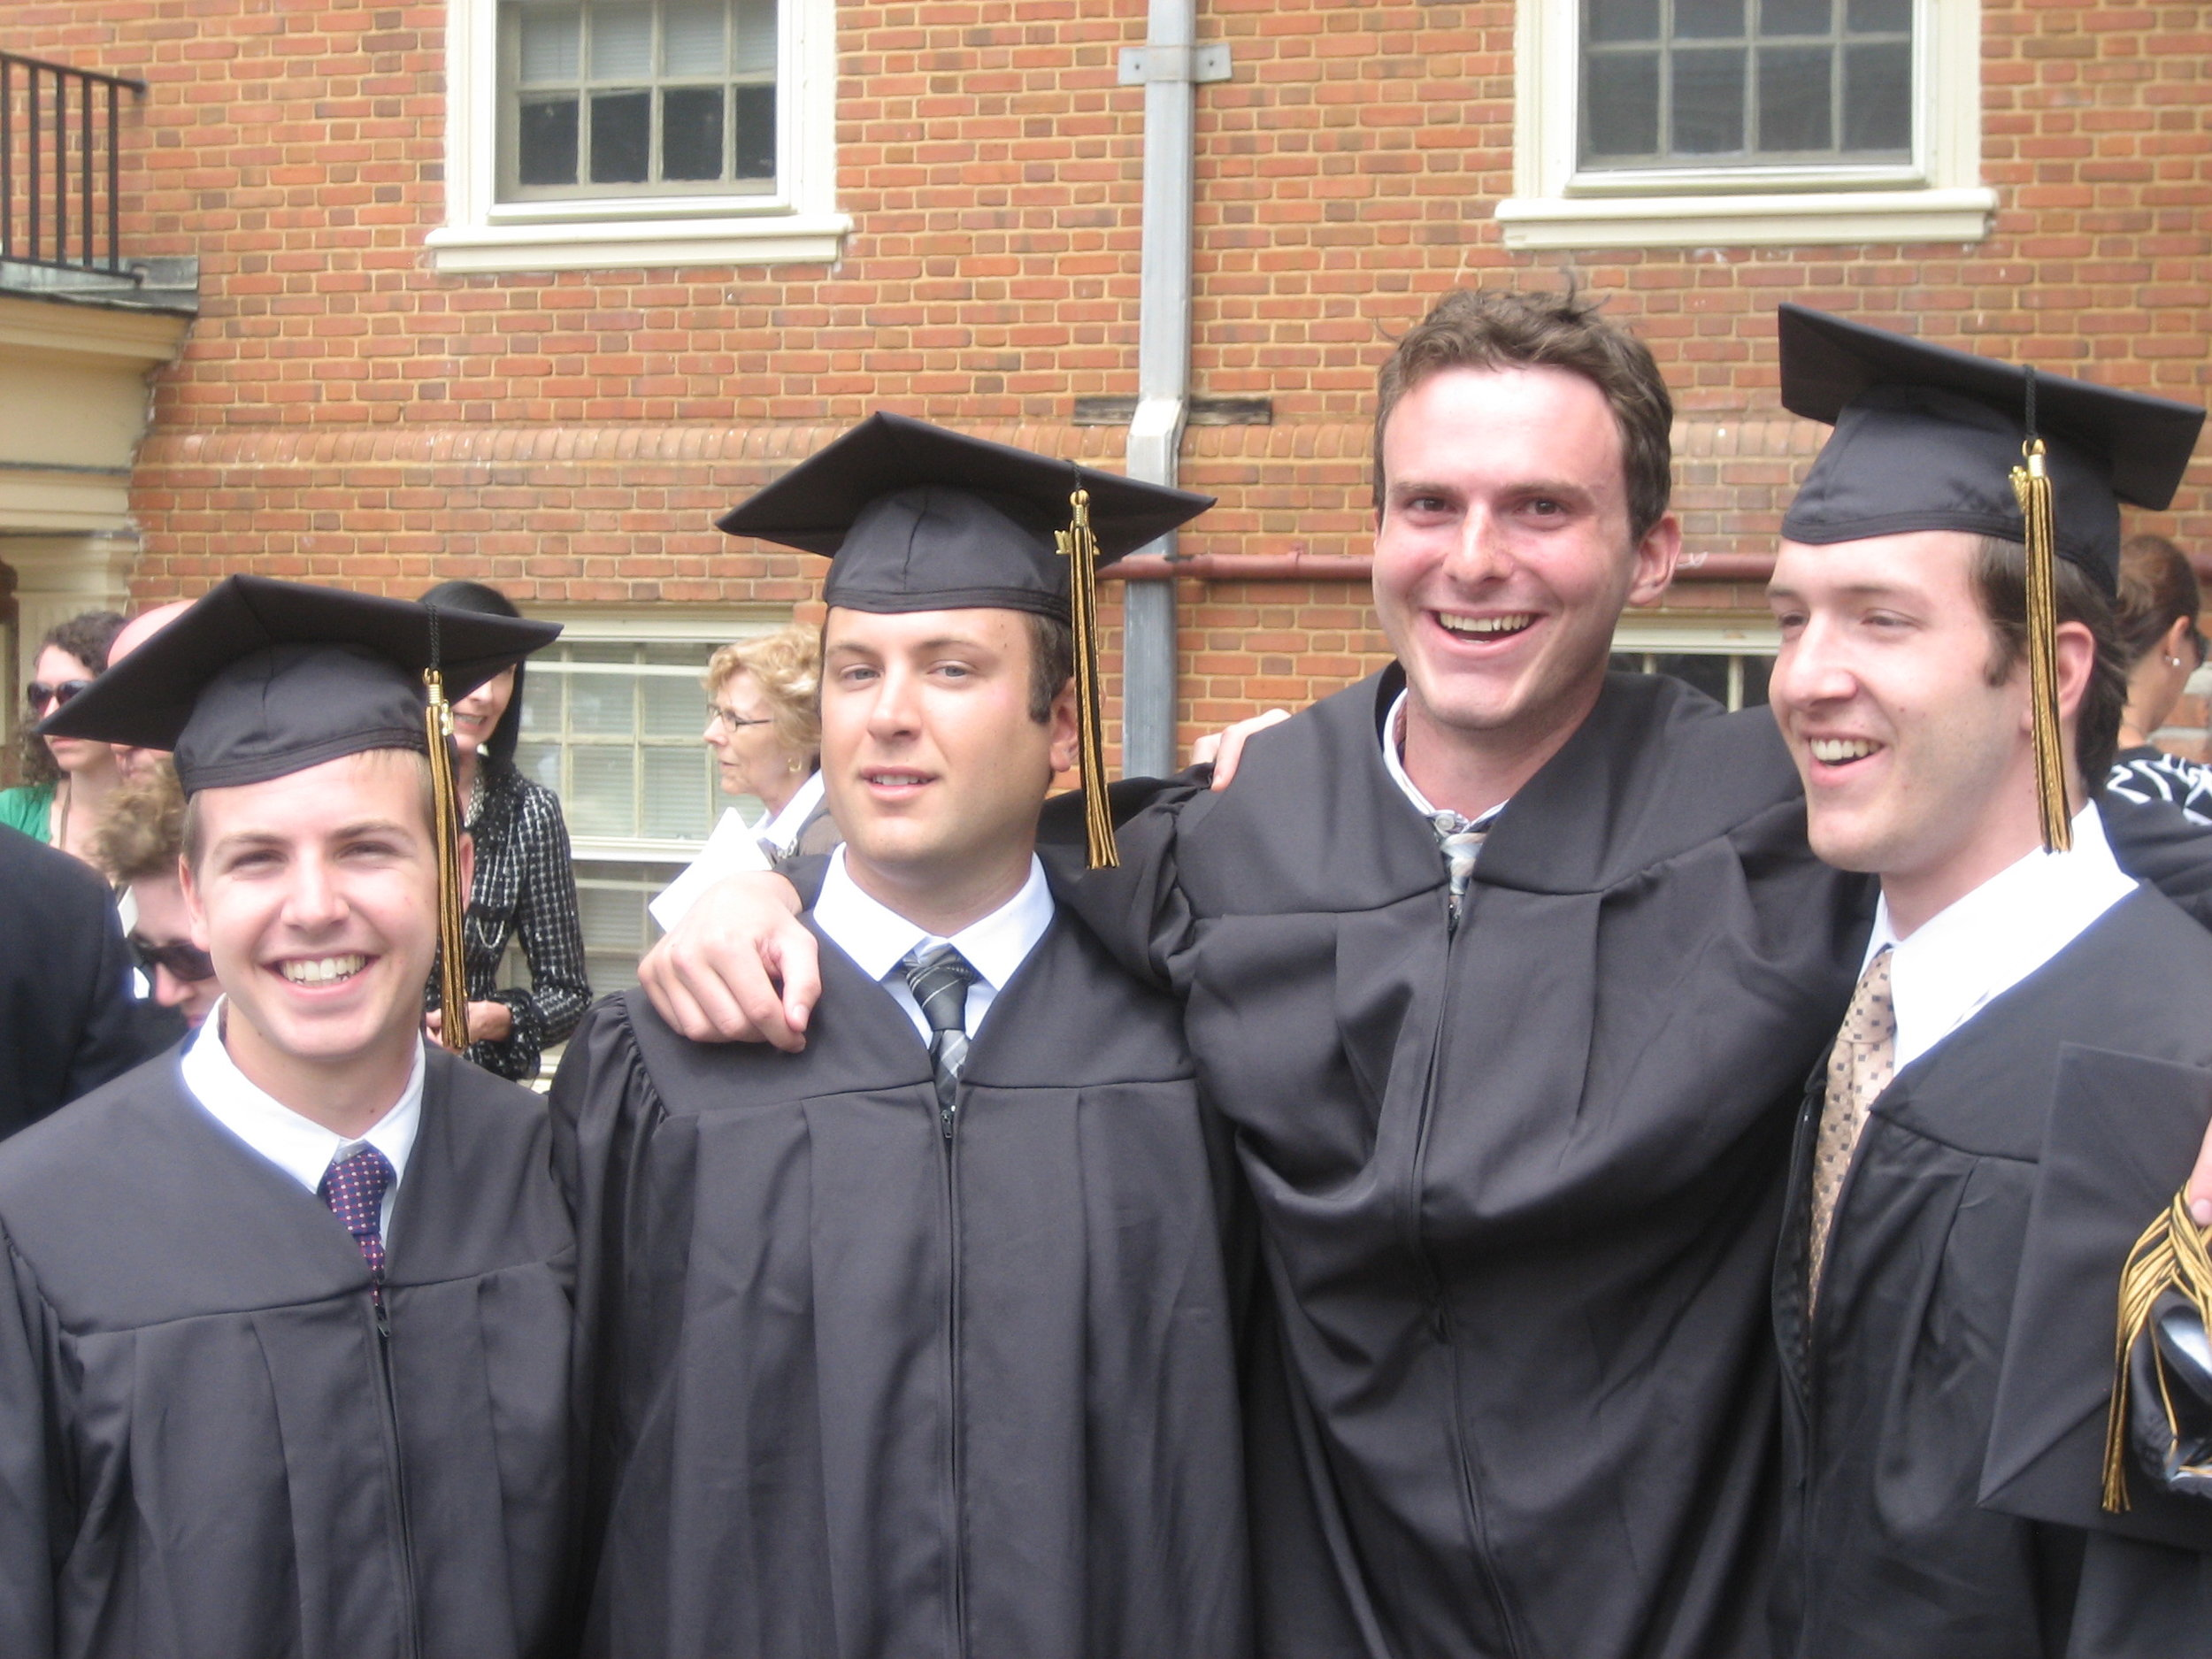 Willy, Jeff, Sam & Justin at graduation